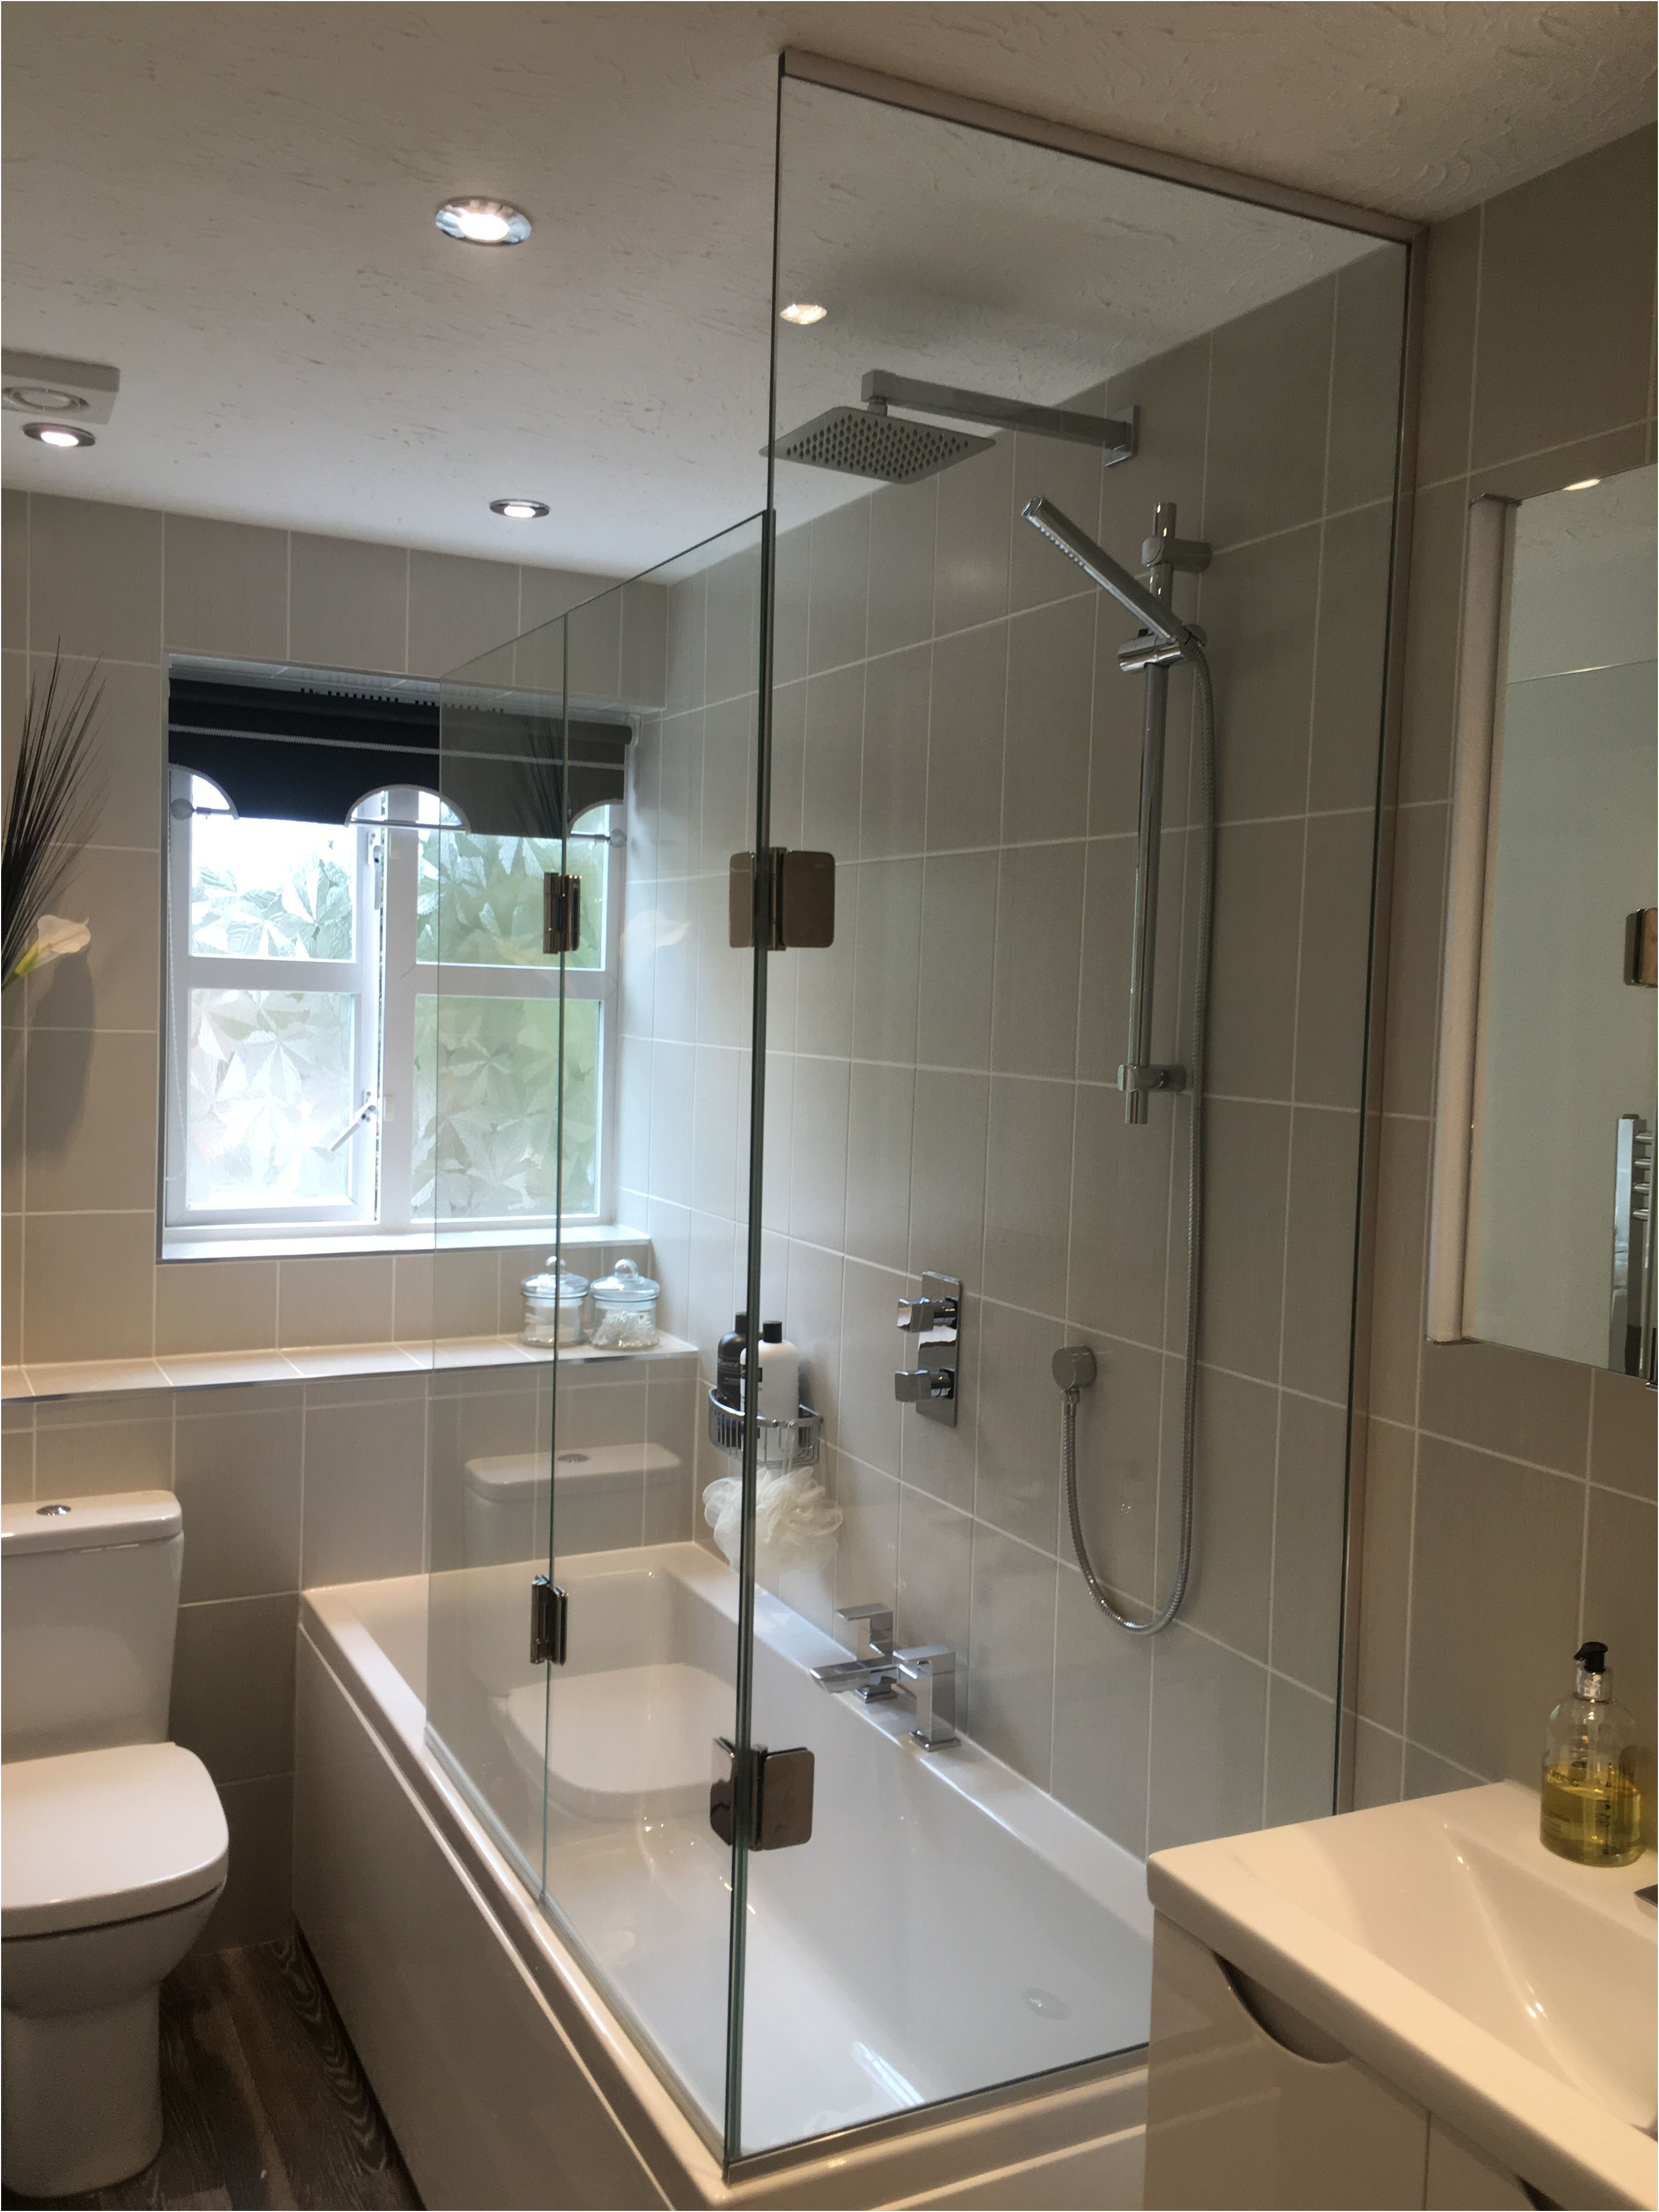 2 Way Mirror In Bathroom Best Of 2 Sided Bath Shower Screen with Fixed Panel to End